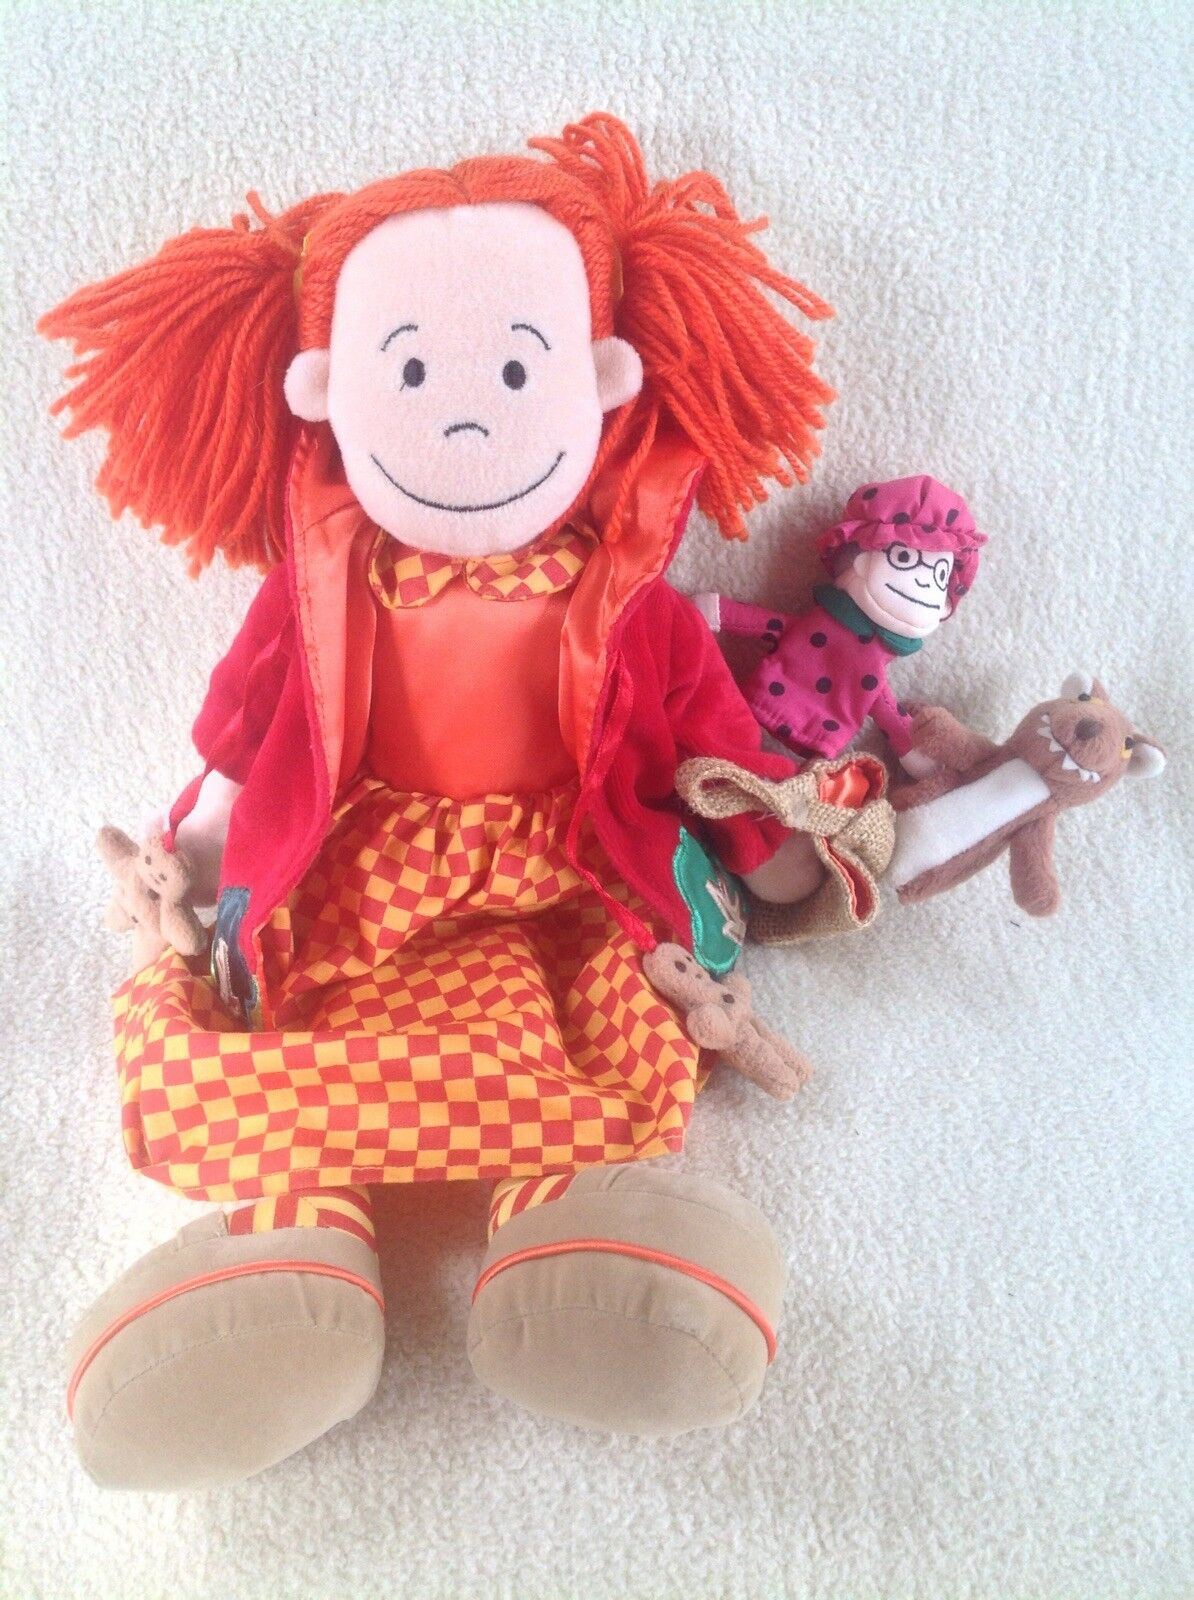 Jellycat Fairy Tale Folk Little Red Riding Hood Plush Soft Doll - Rare